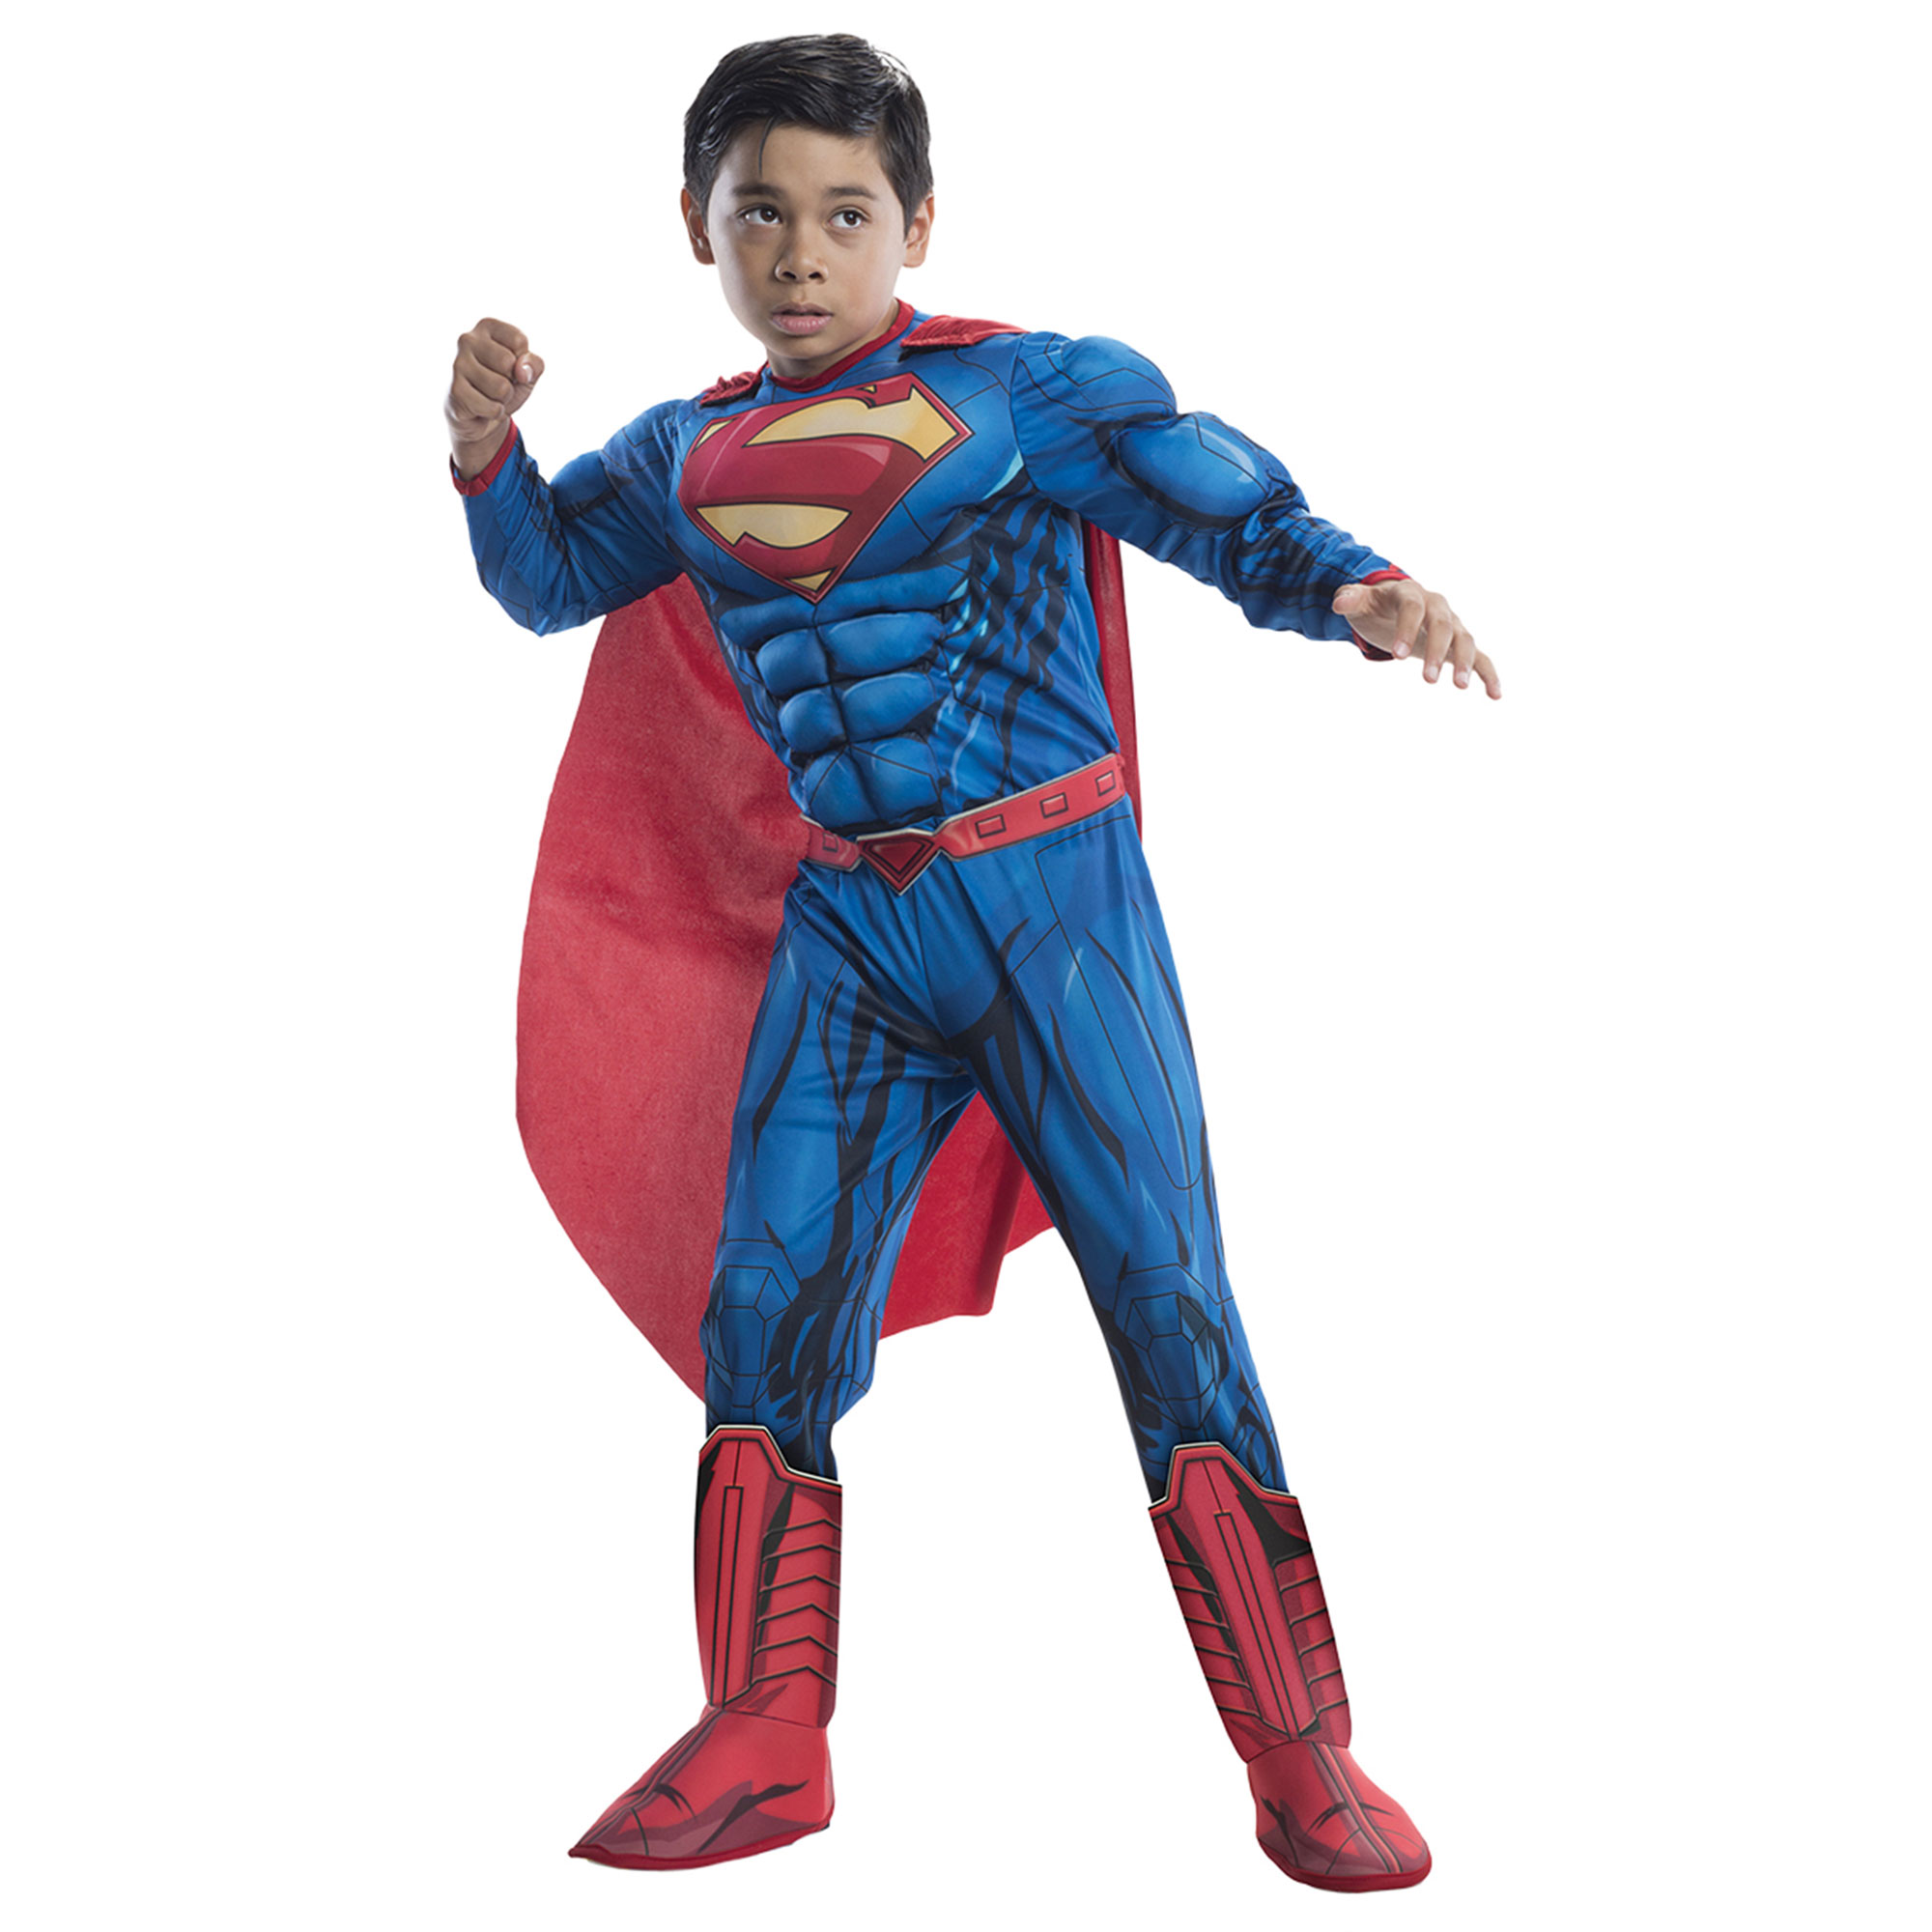 Morris Costumes Boys Superman Deluxe Padded Muscle Jumpsuit Large, Style RU610831LG